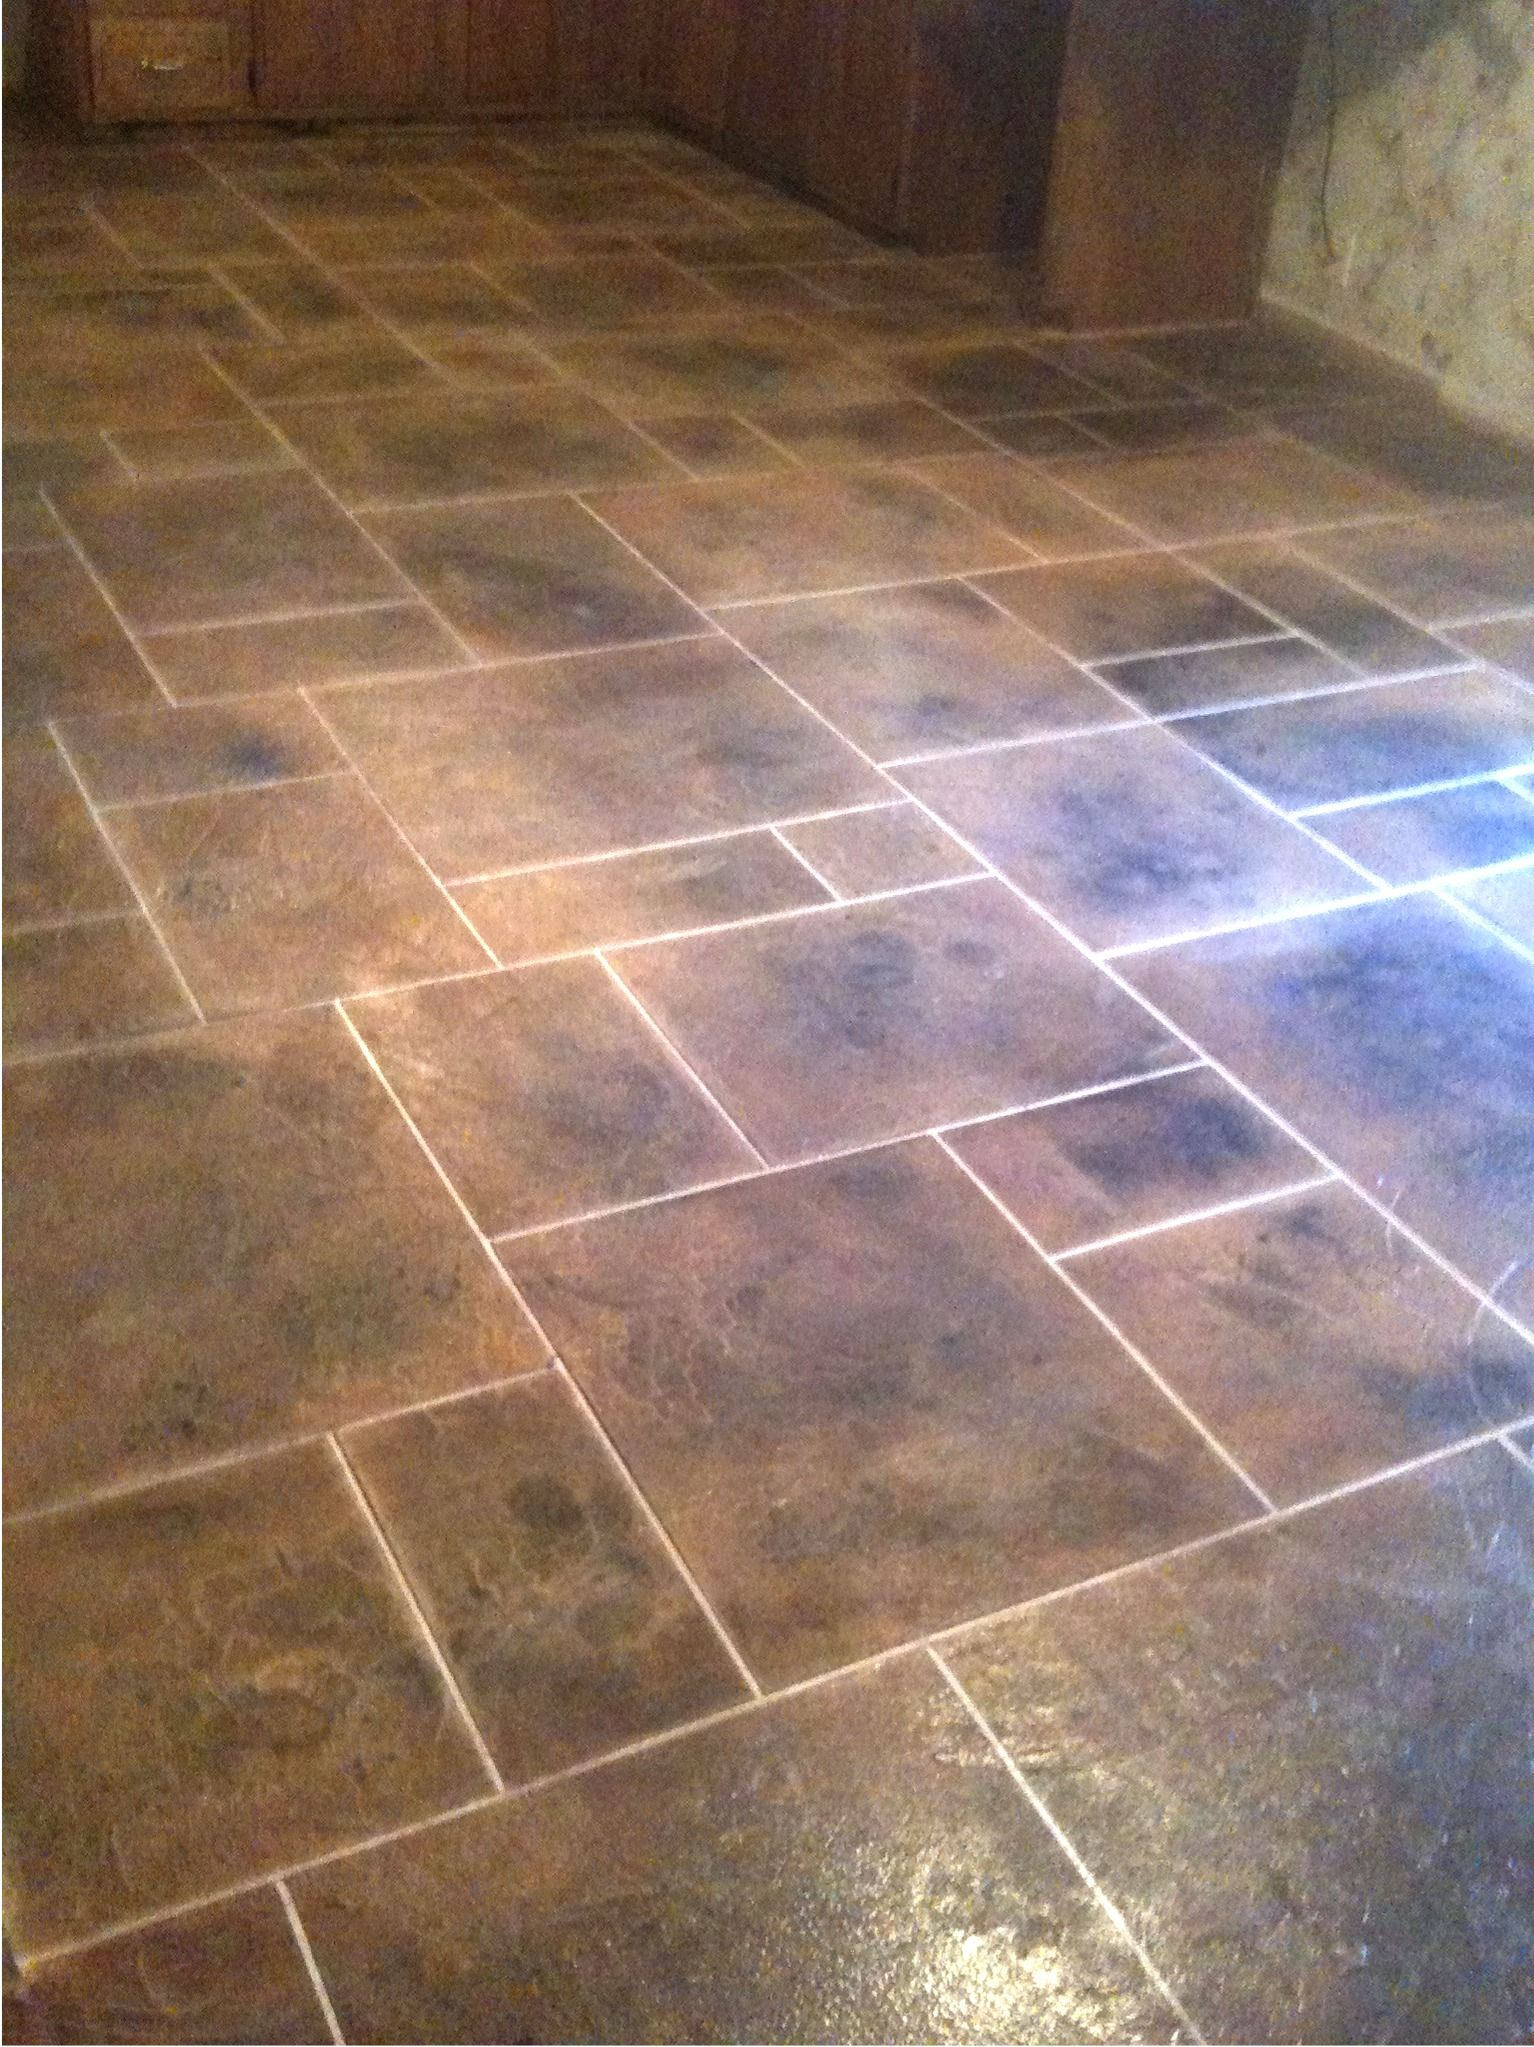 Kitchen floor tile patterns concrete overlay random for Floor and tile